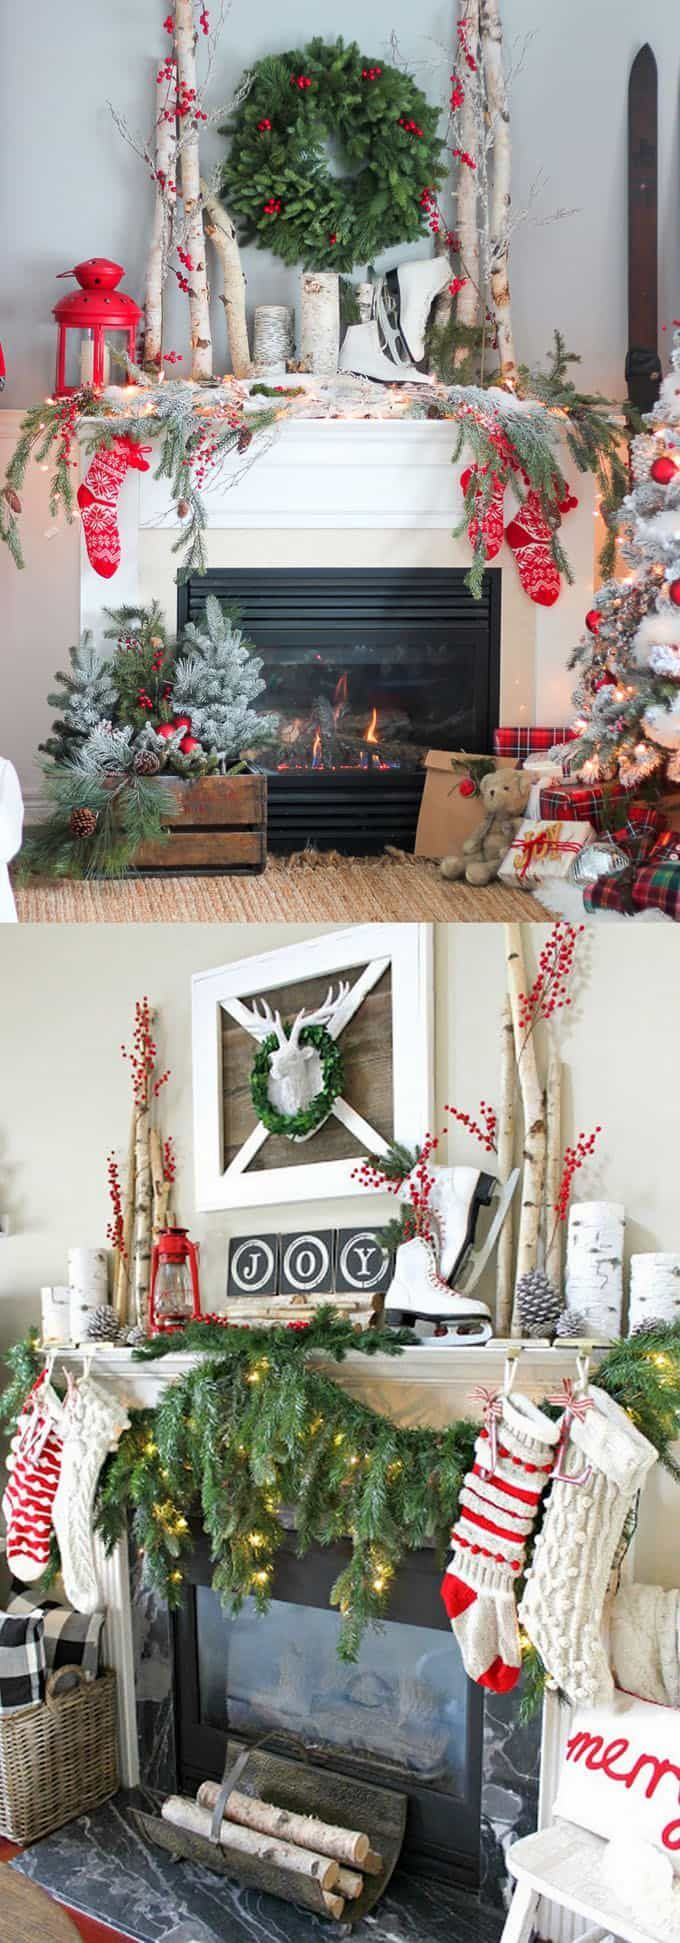 50 Christmas Decoration Ideas You Should Know For A Merry Christmas